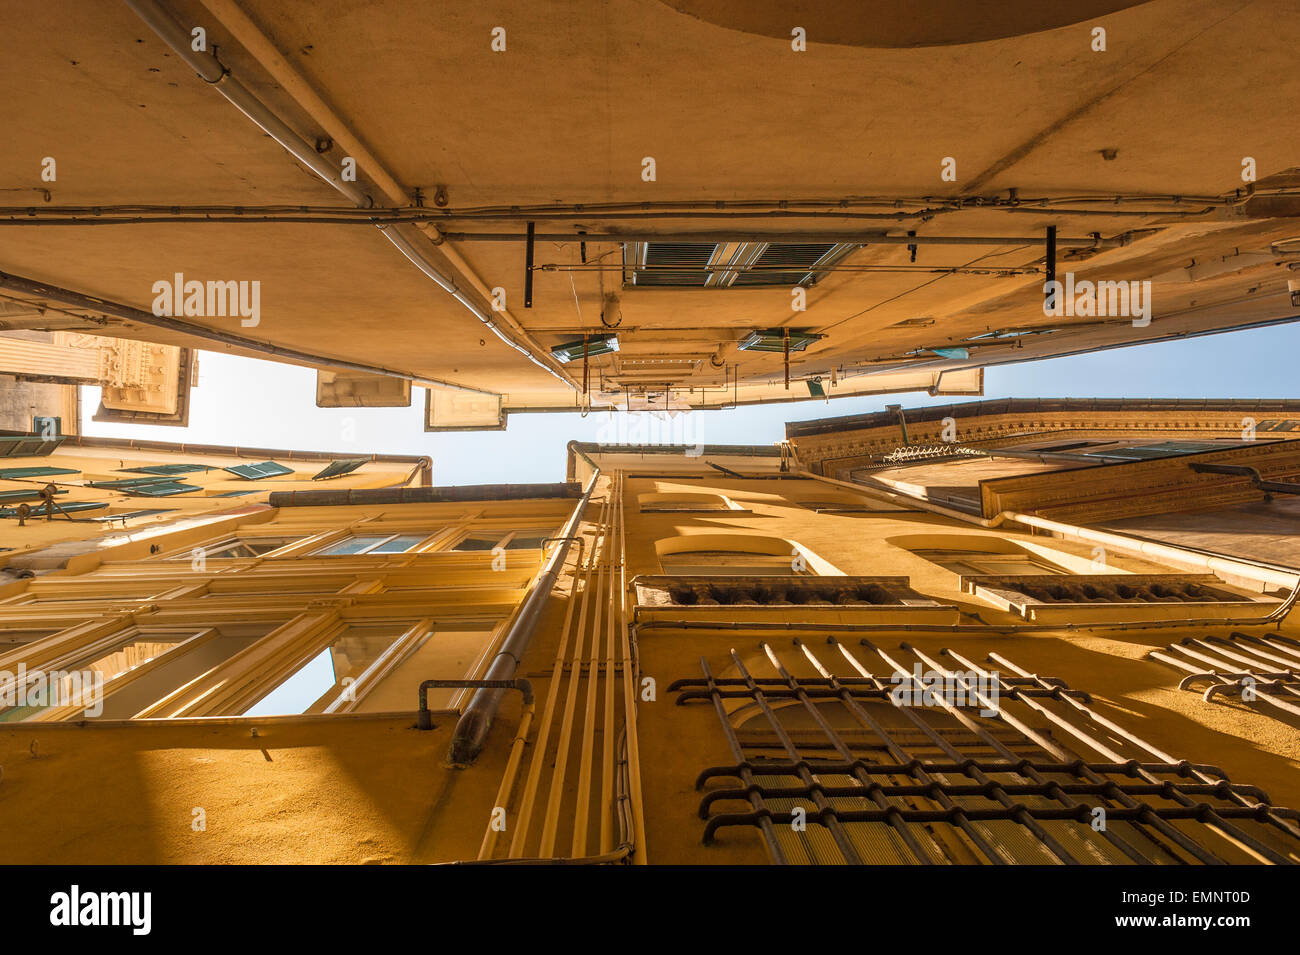 Genoa street, the view up from ground level in a typically narrow alley in the medieval heart of Genoa - the Centro - Stock Image